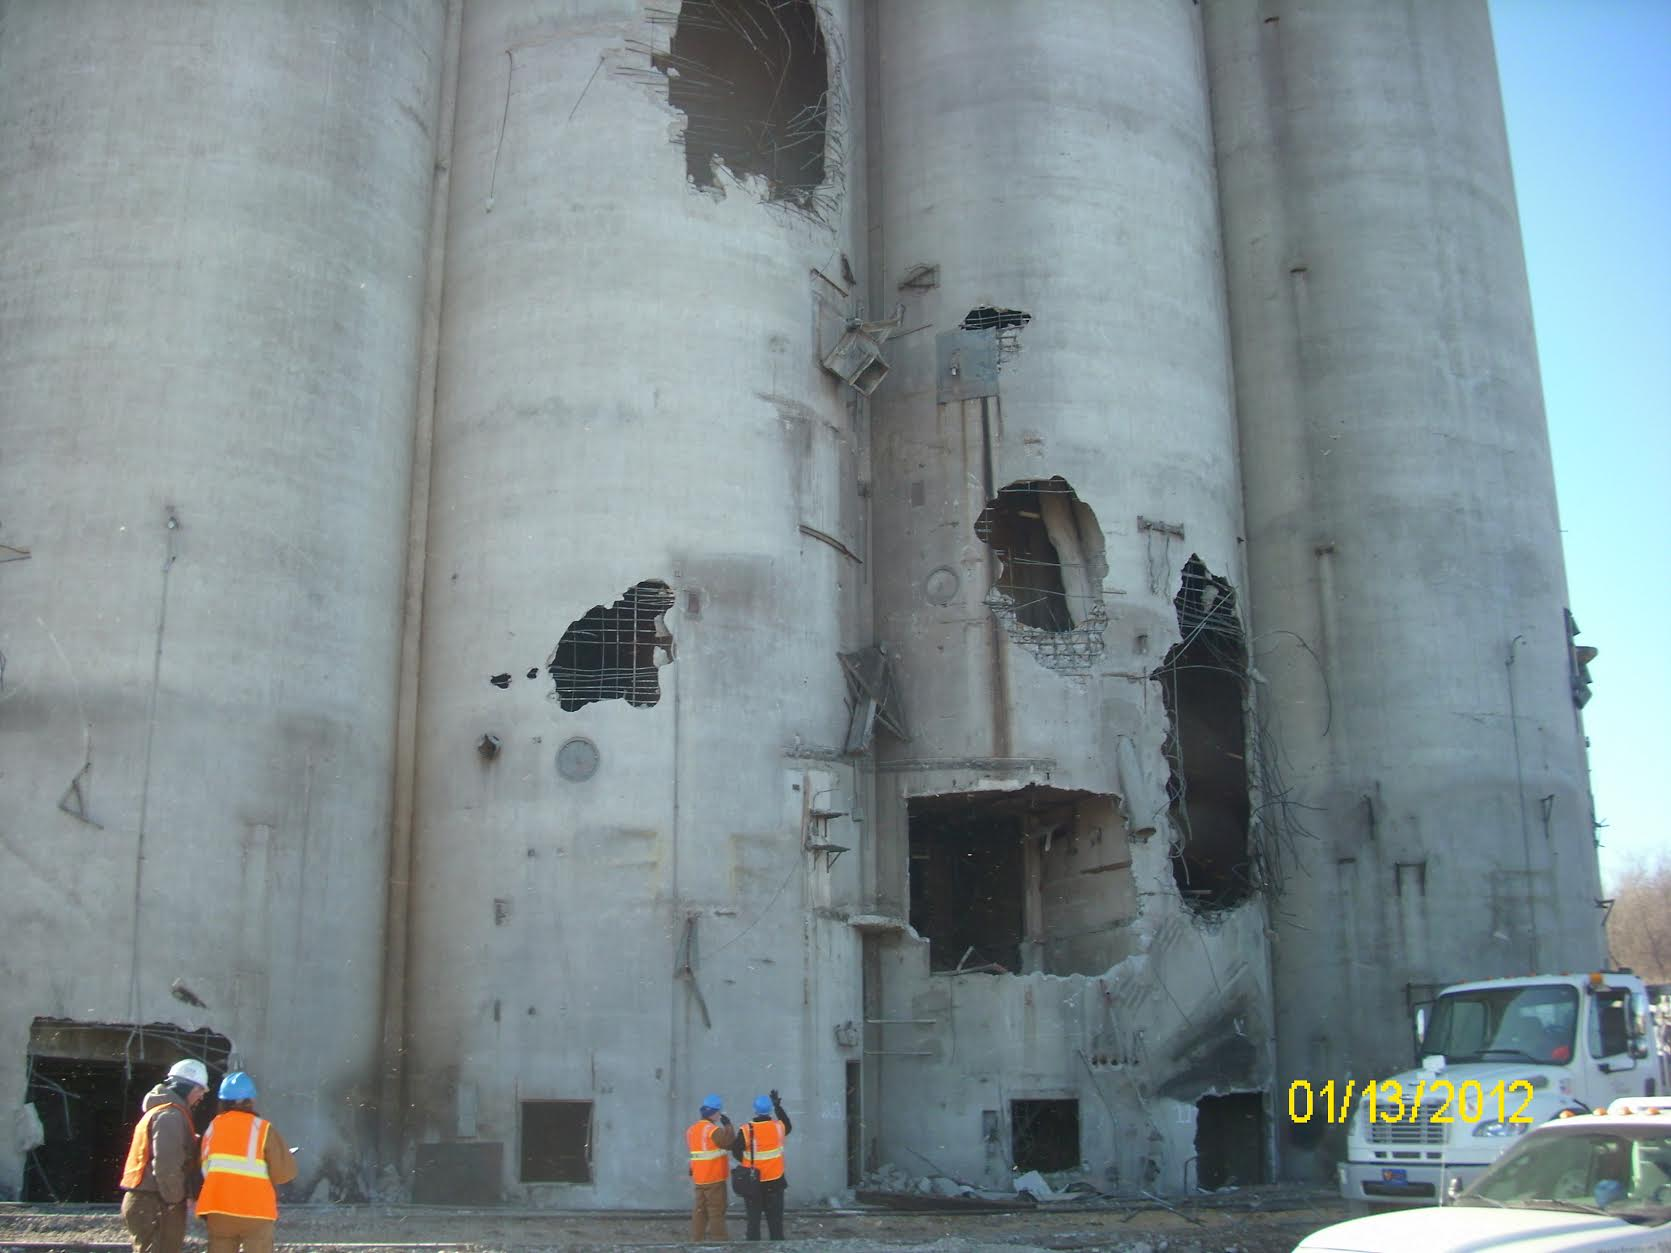 A corn elevator showing explosion holes